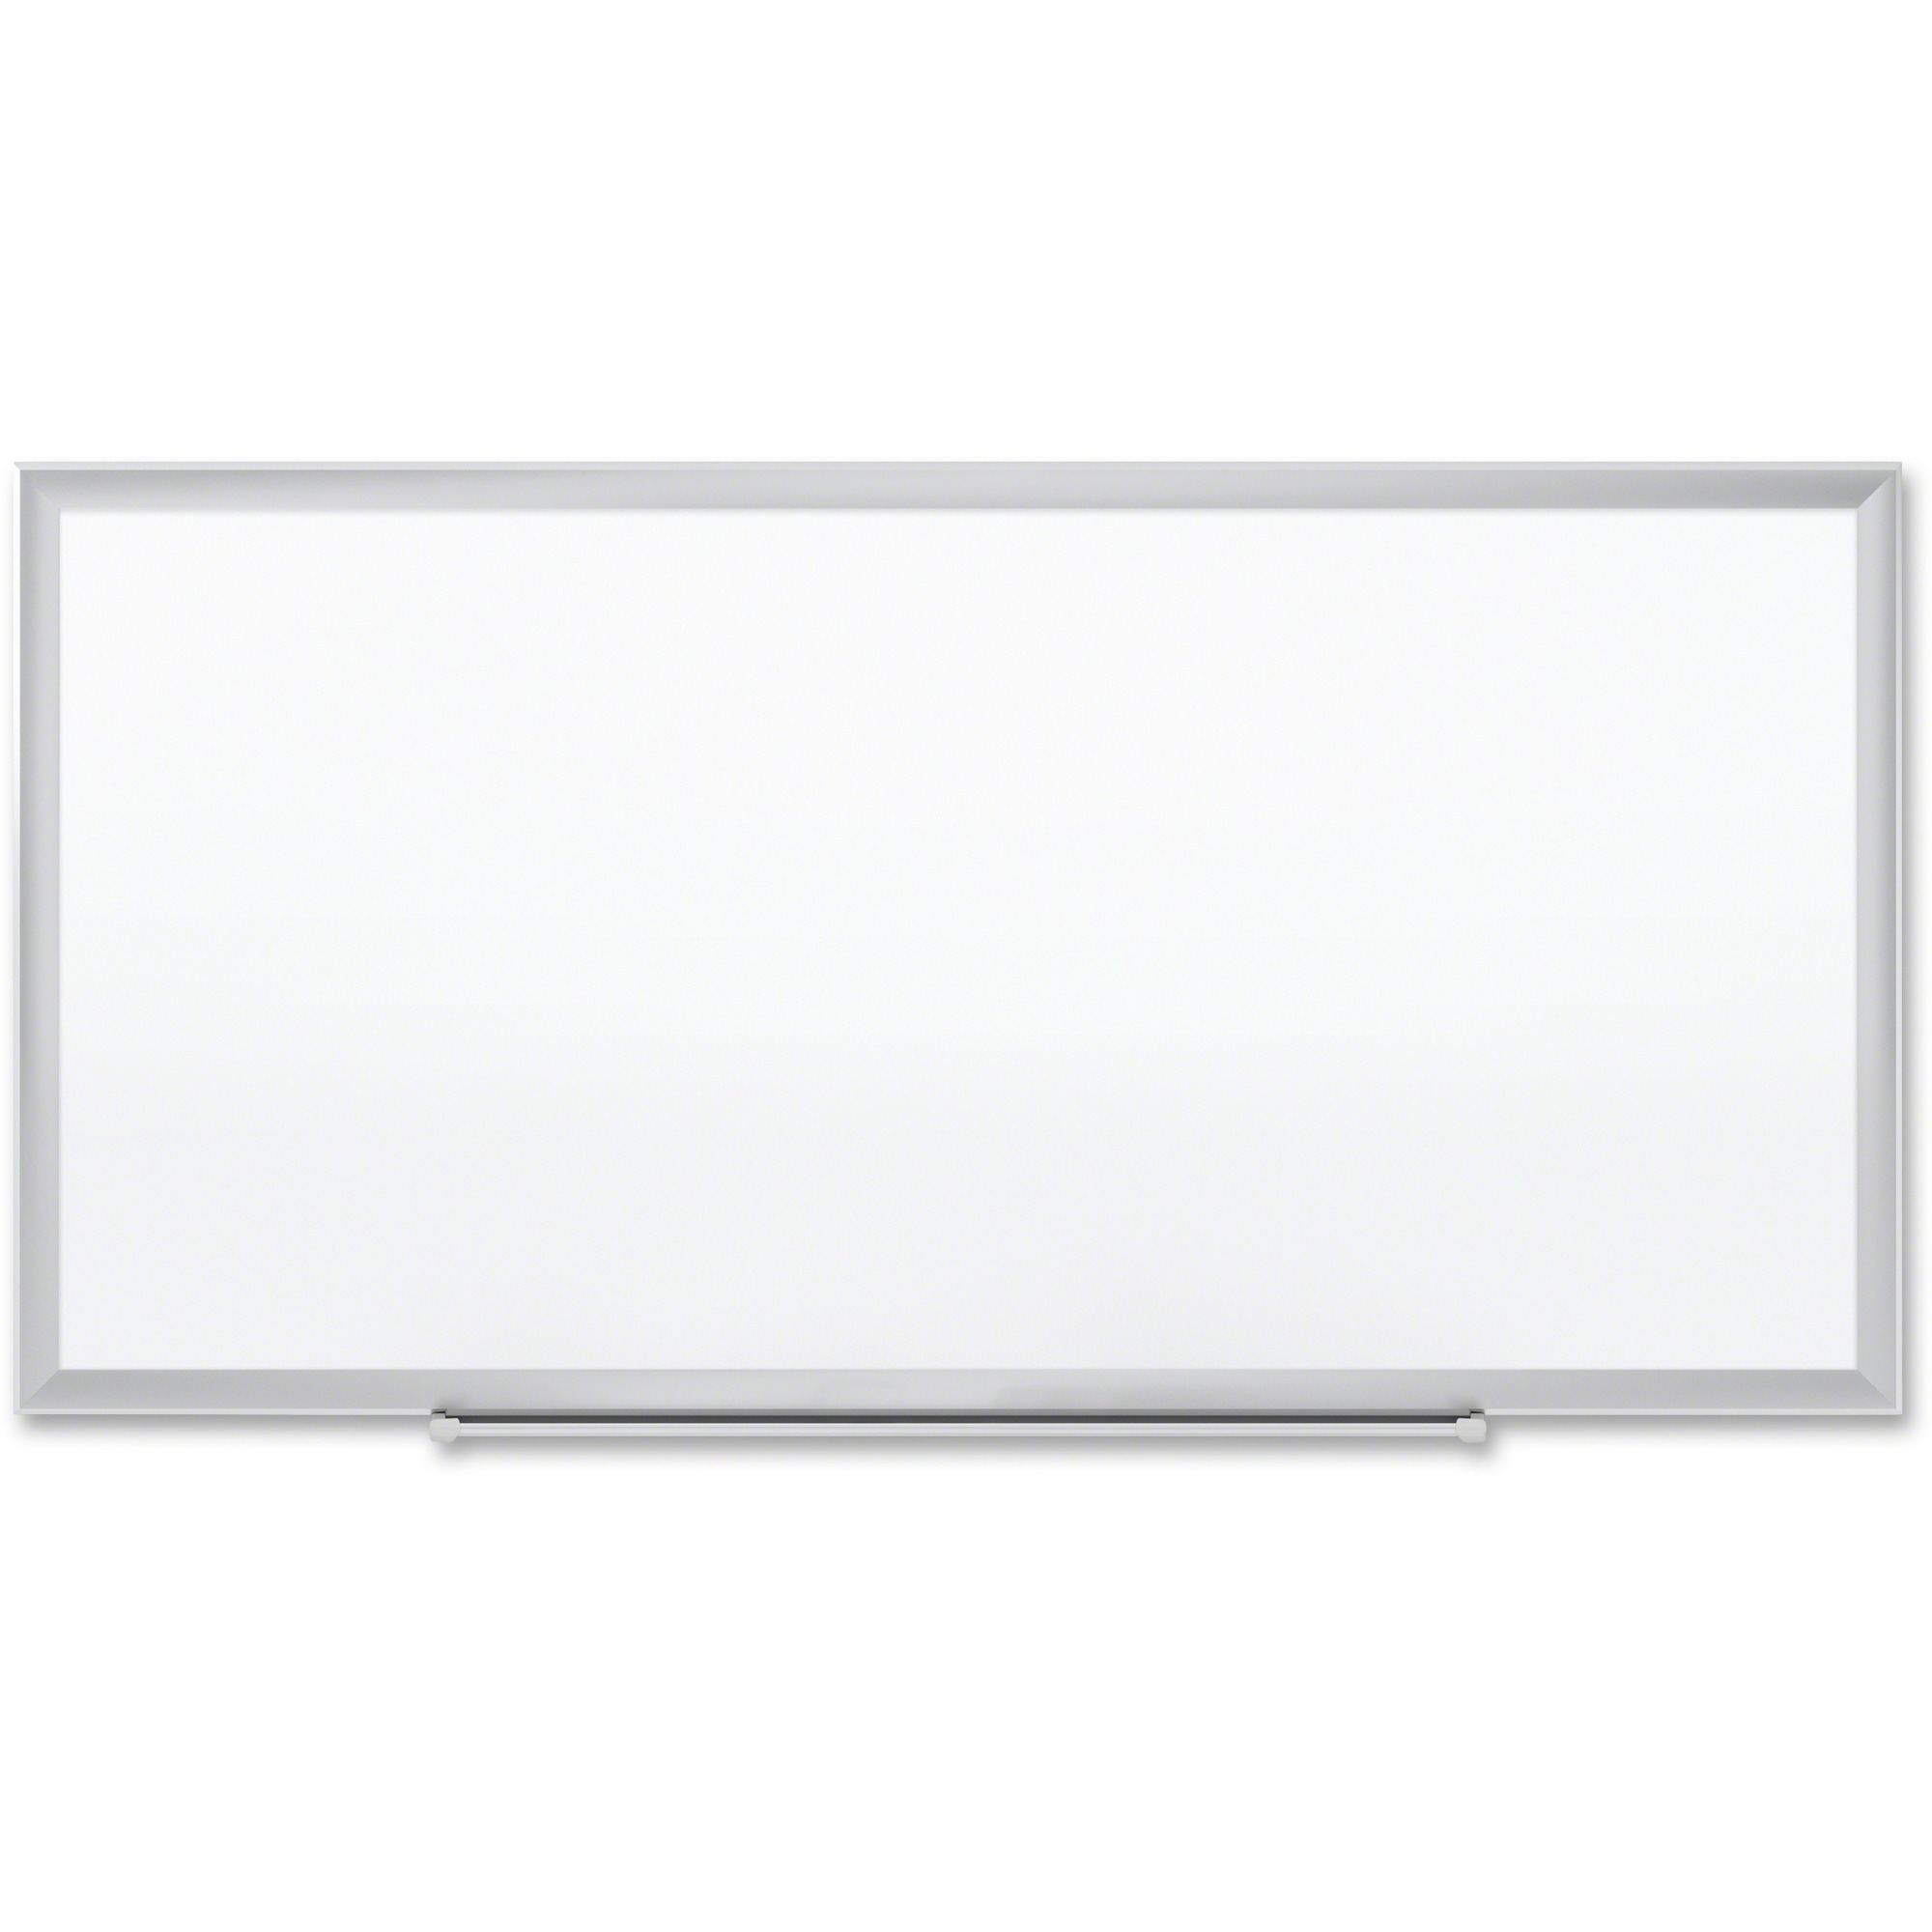 Acco Brands Corporation Quartet® Premium Duramax® Porcelain Magnetic Whiteboard, 8 X 4, Silver Aluminum Frame - 96 (8 Ft) Width X 48 (4 Ft) Height - White Porcelain Surface - Silver Aluminum Frame - Rectangle - Horizontal/vertical - 1 / Each - Taa